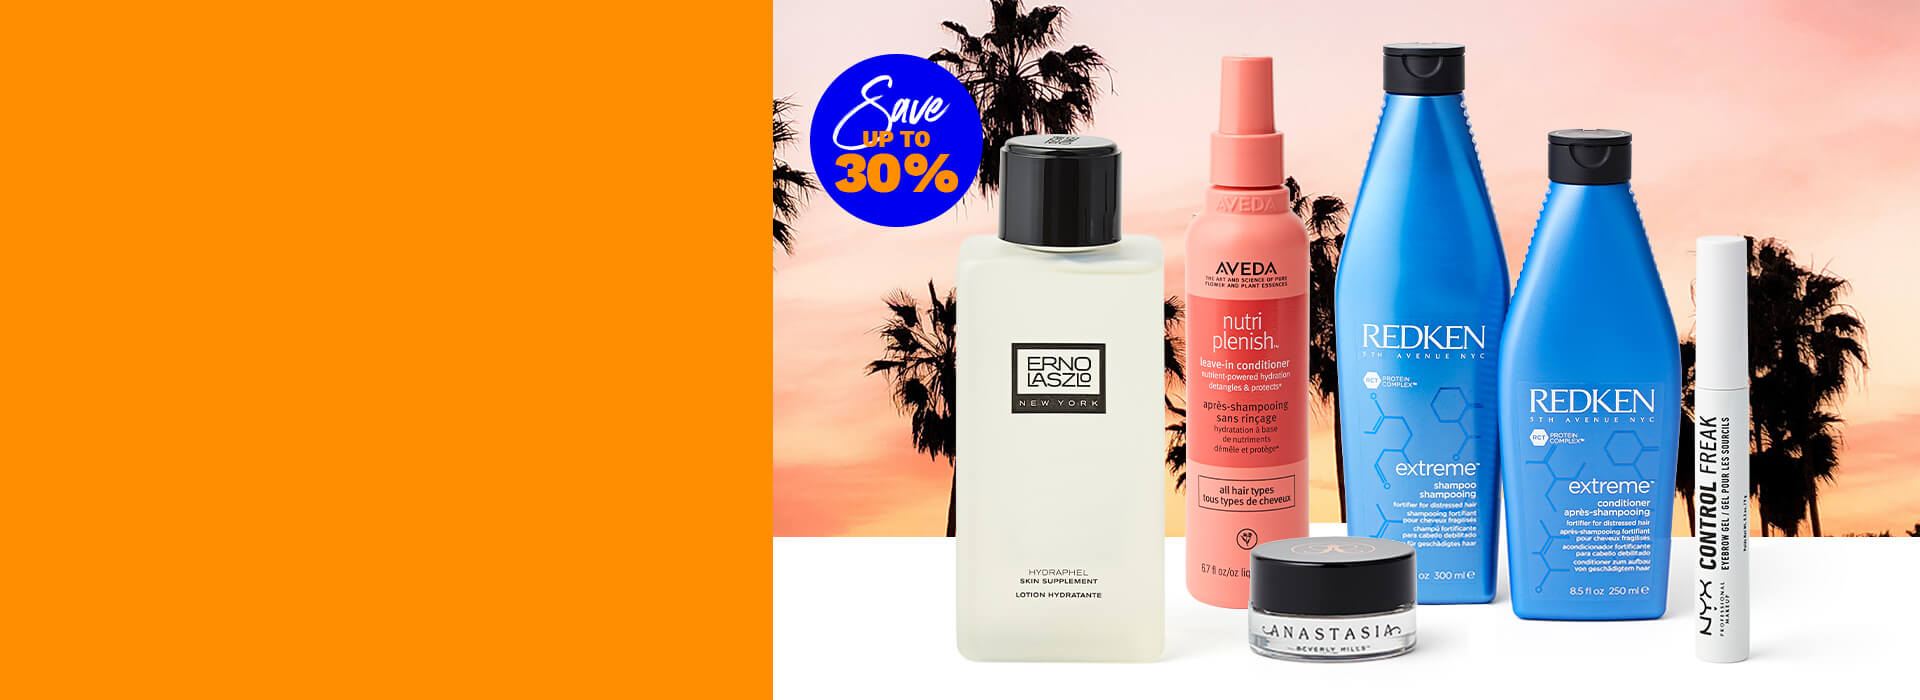 save up to 30% on our favourite beauty products. shop now